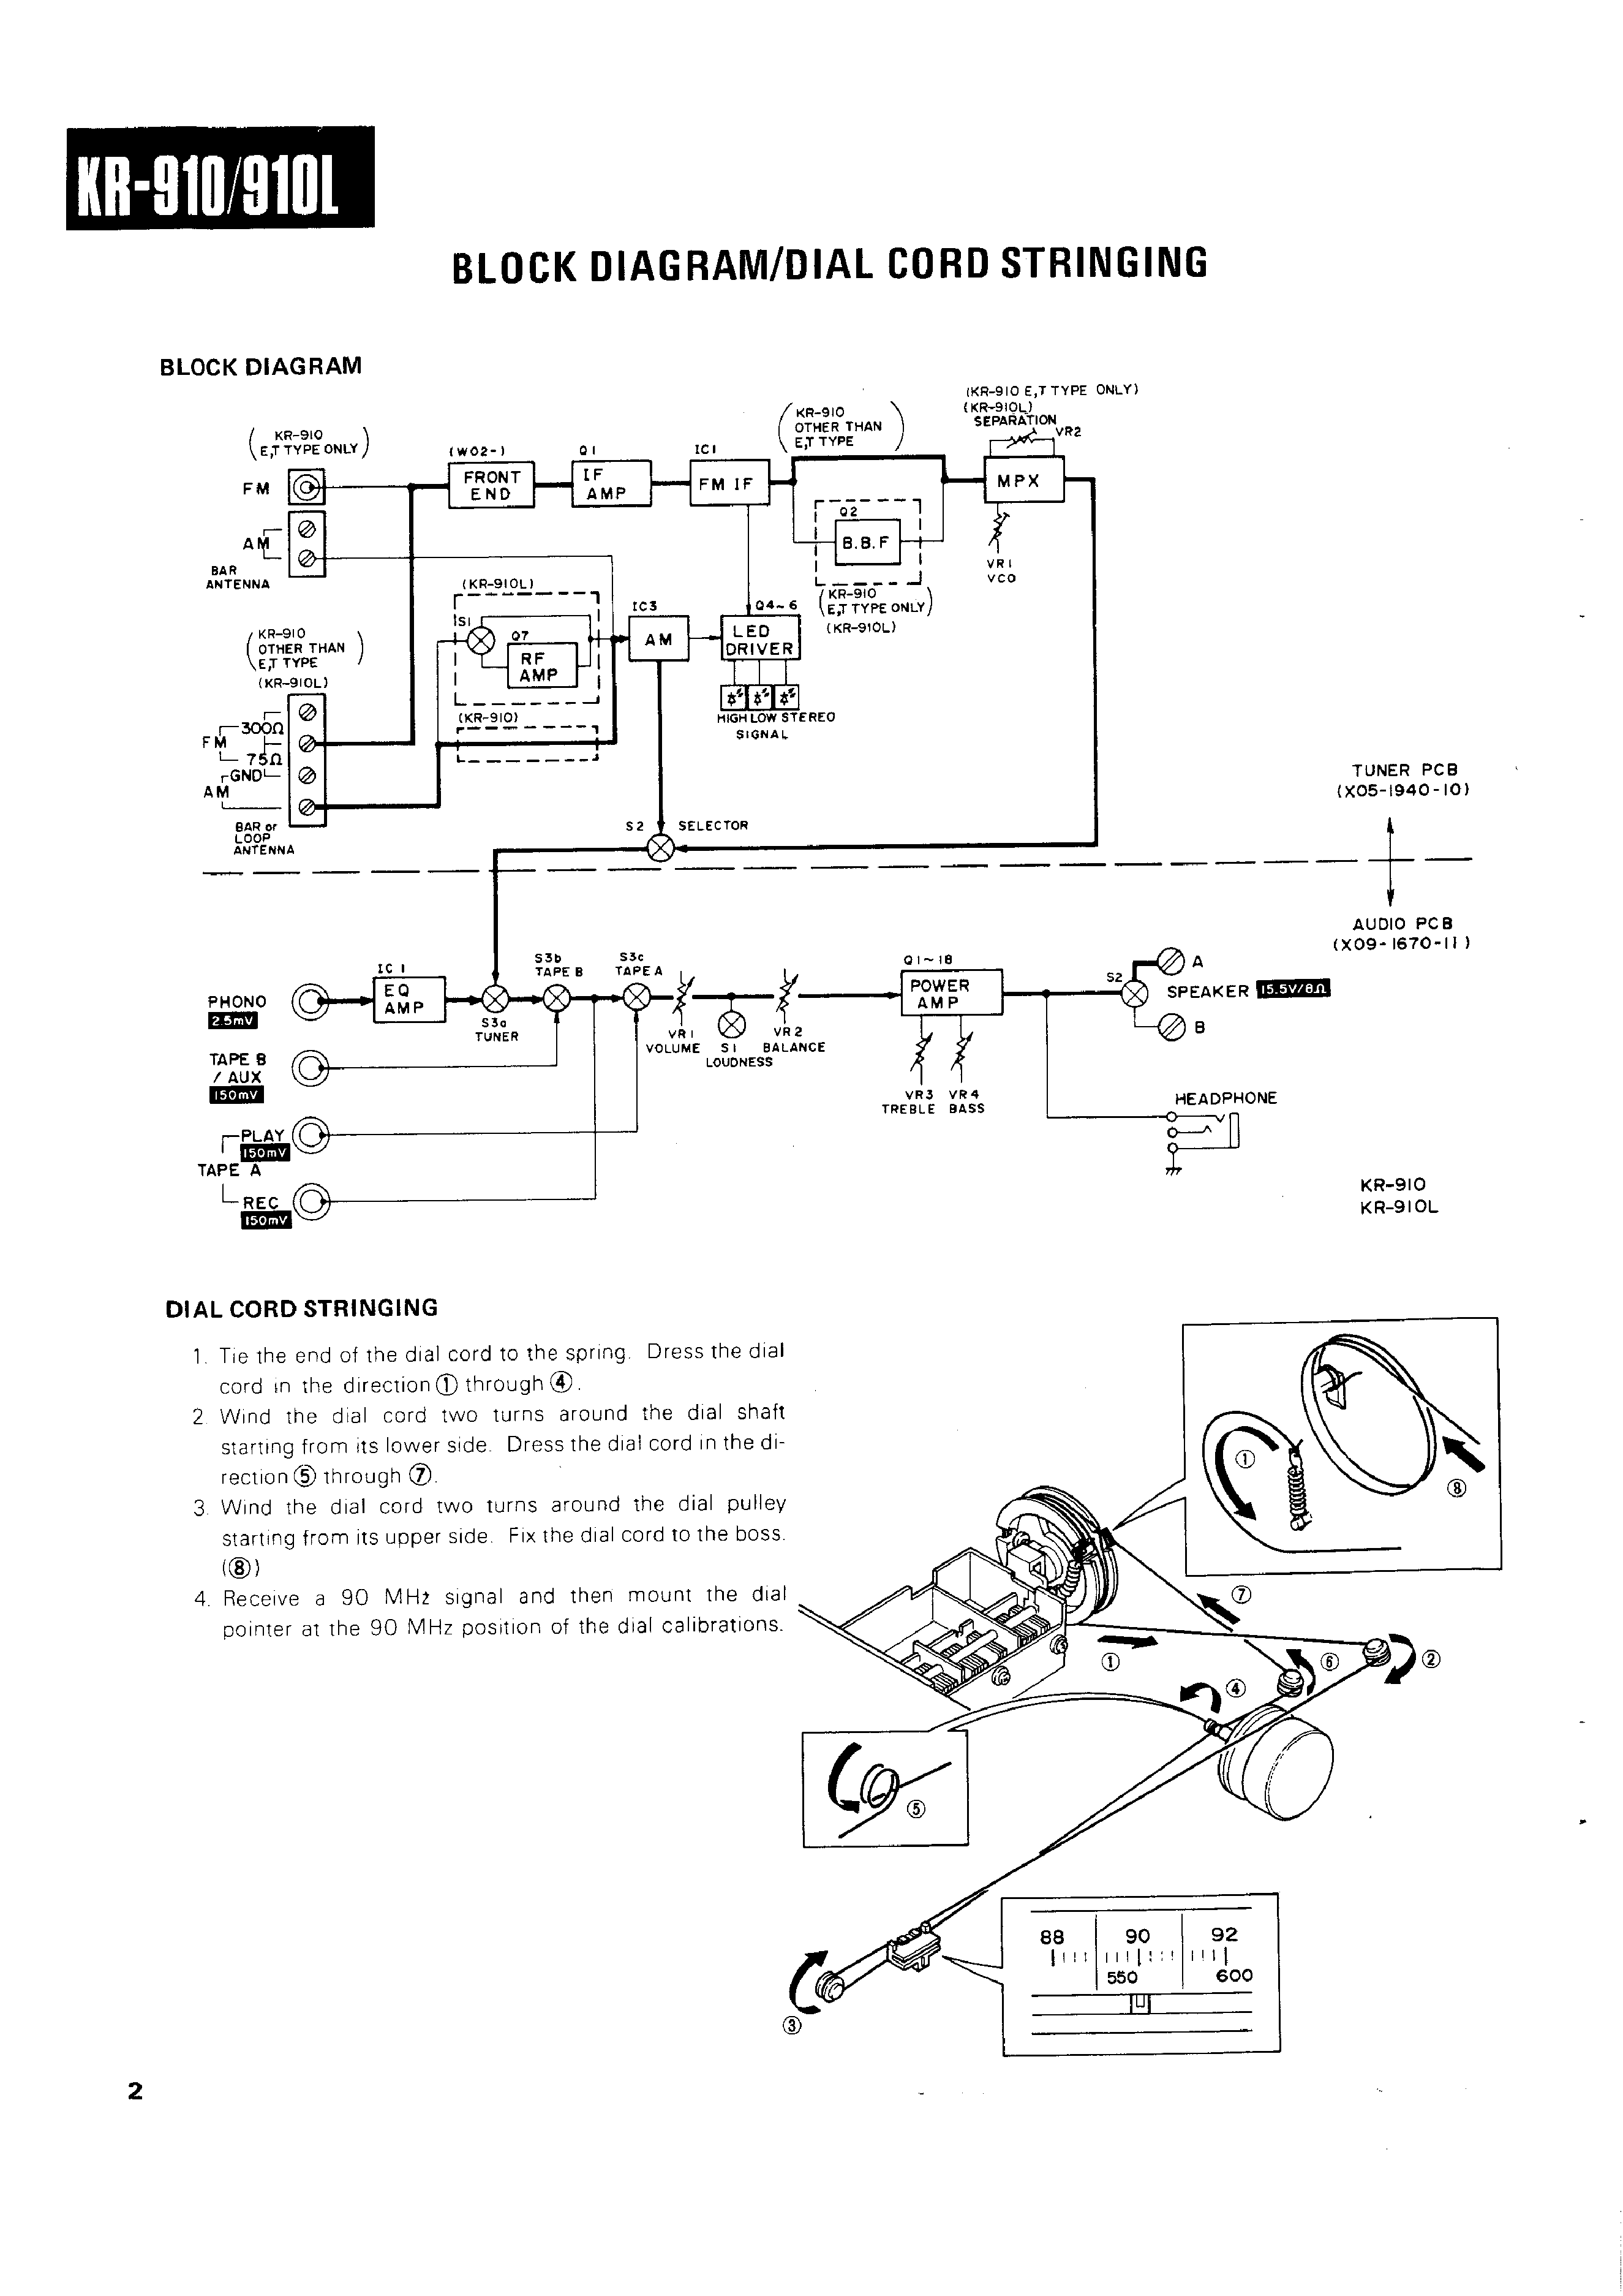 Daewoo 70gs 64s Television Cricuit Diagram Manual